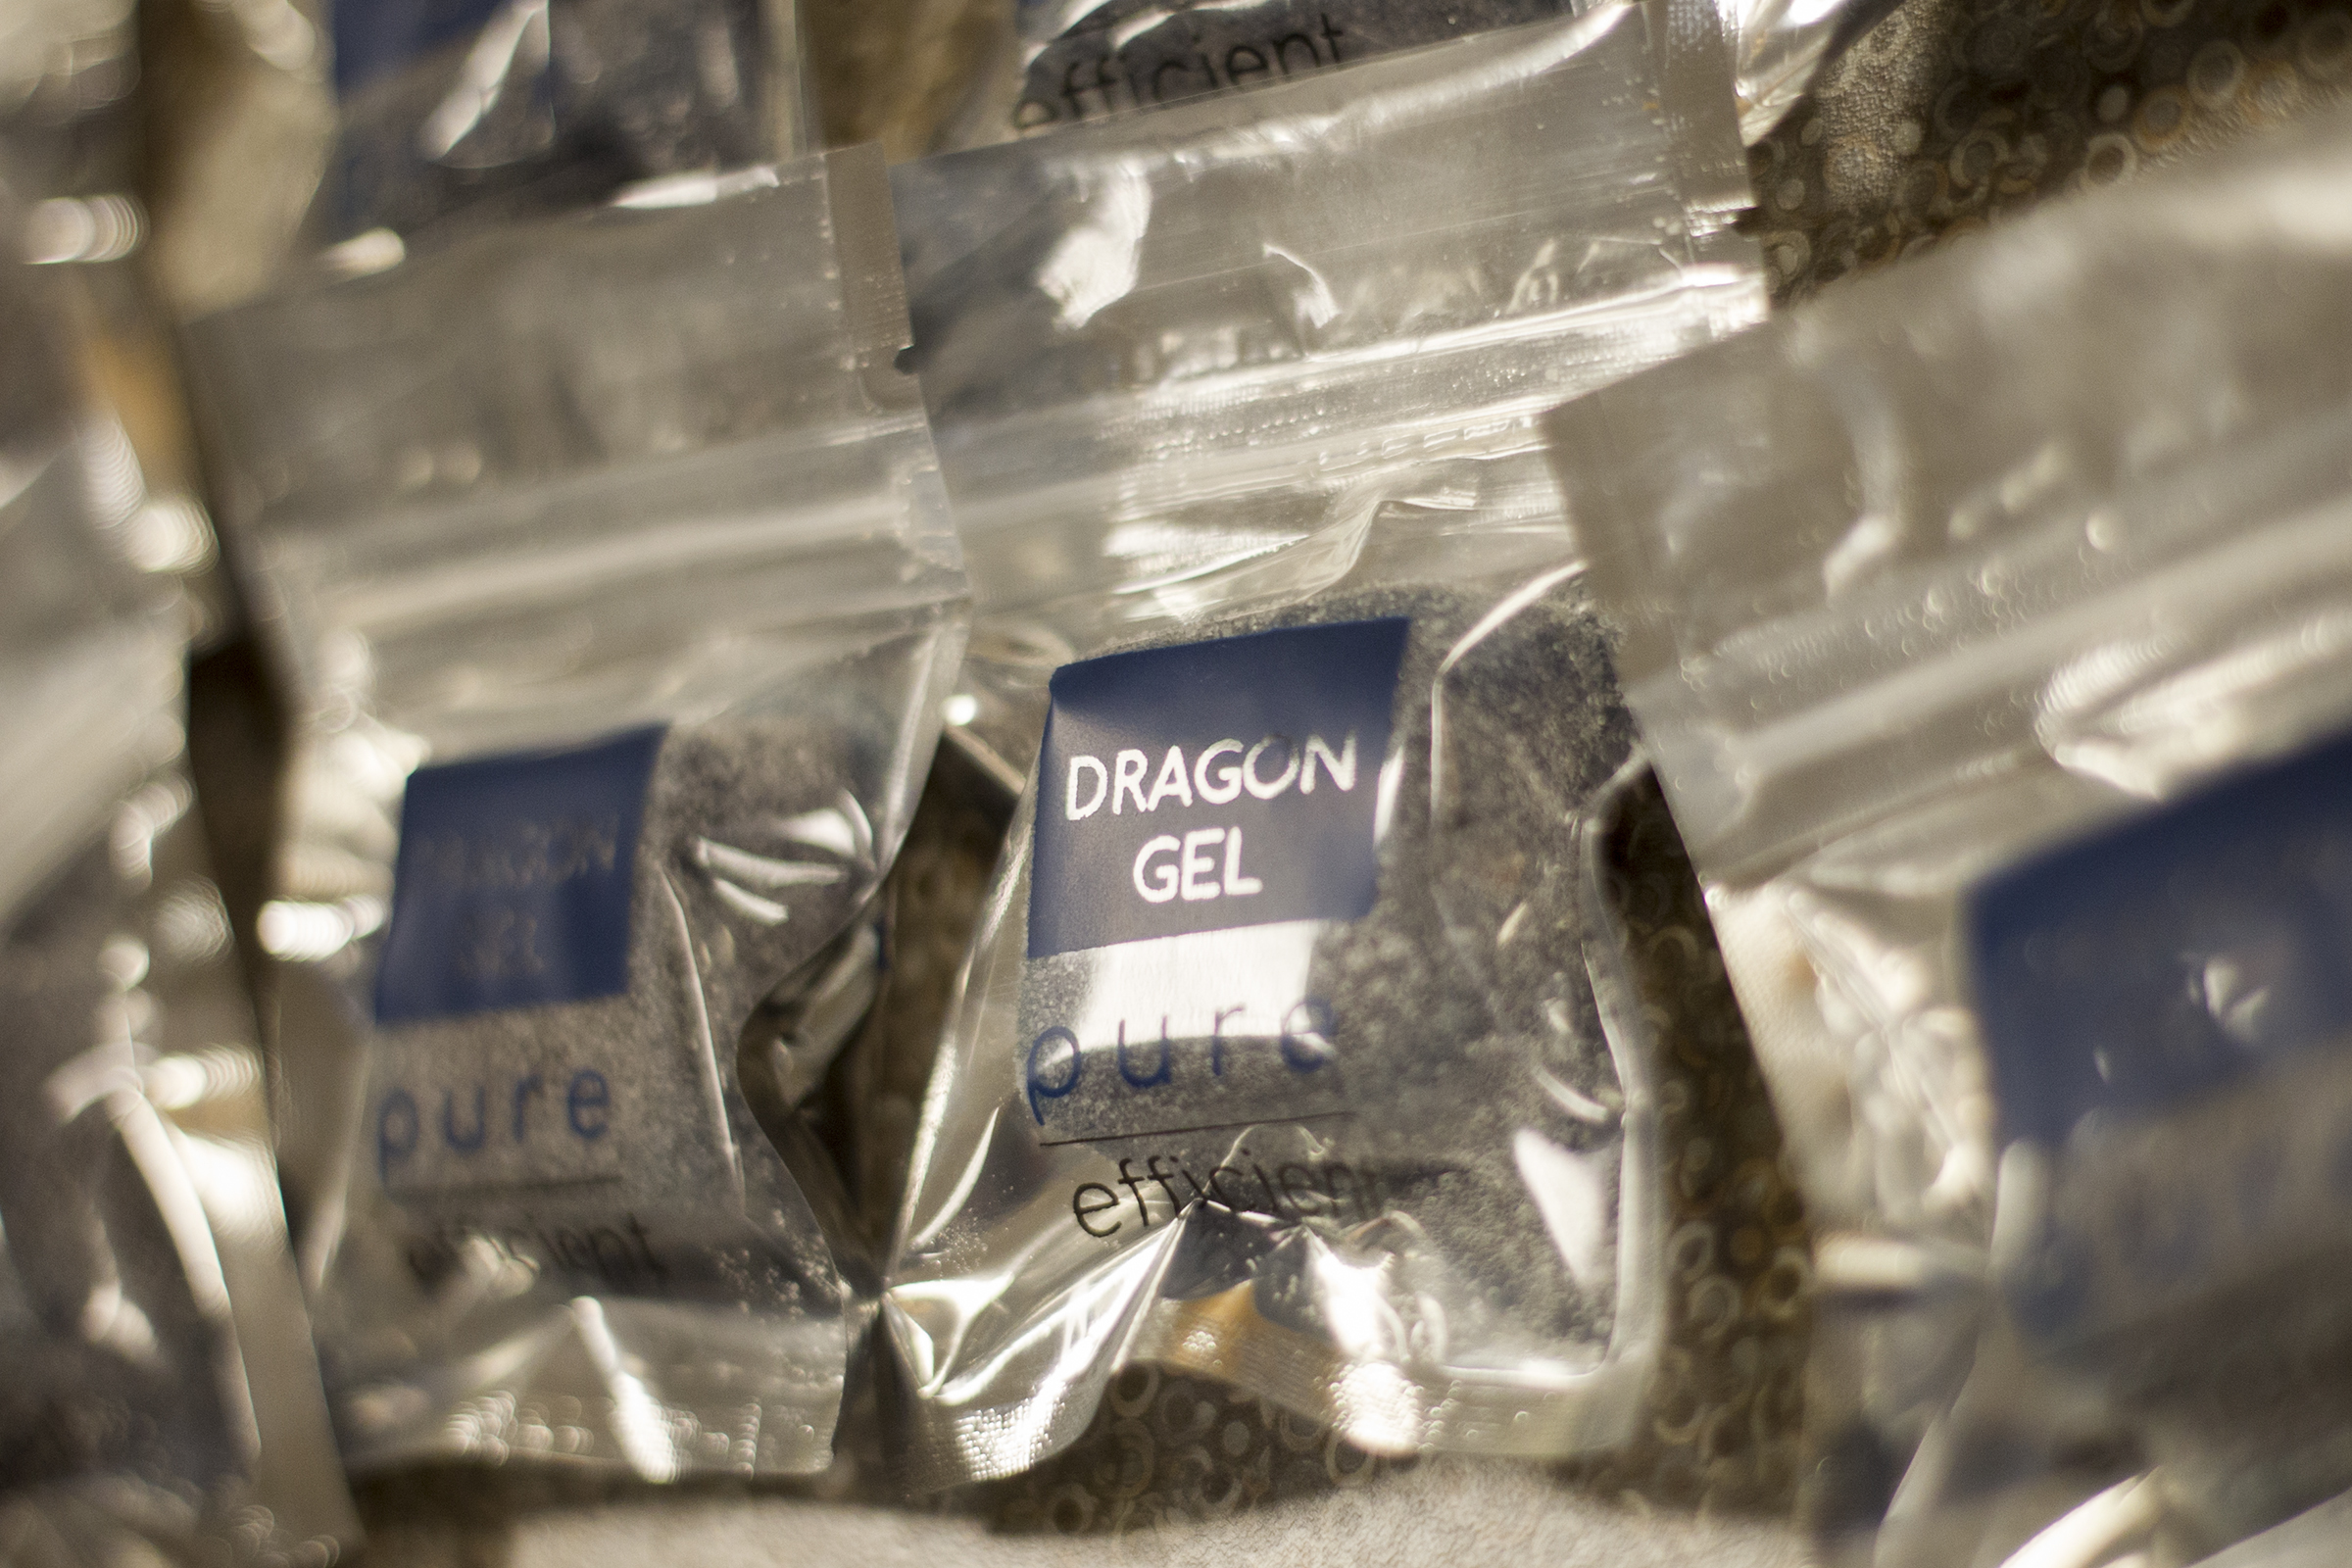 Dragon Gels are a sports snack that helps replenishes muscle glycogen stores that are depleted during competition.